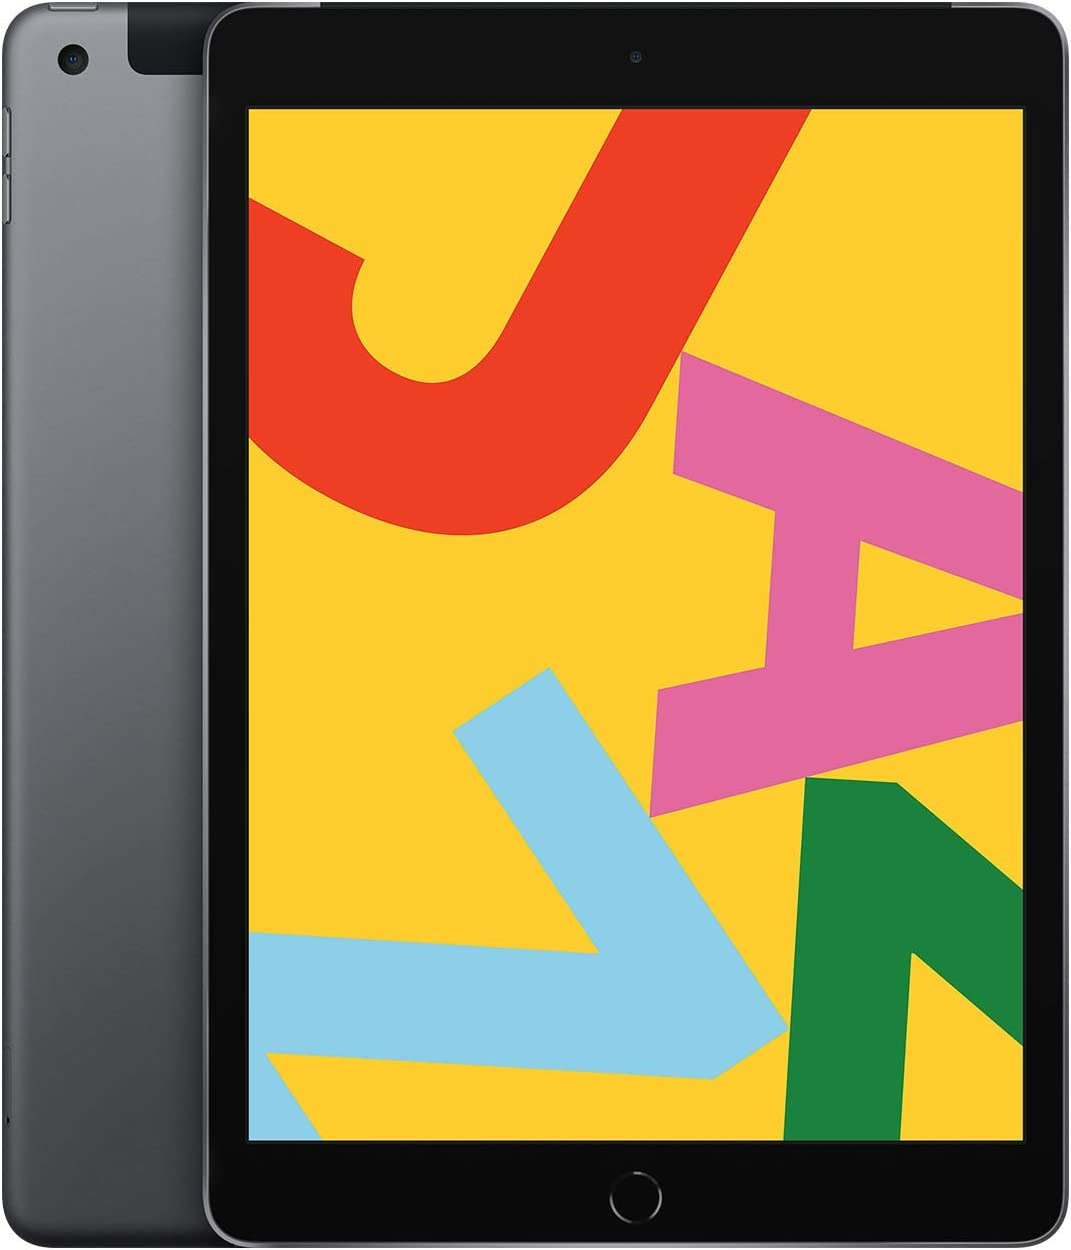 Apple iPad (10.2-inch, Wi-Fi + Cellular, 128GB) - Space Gray (Previous Model)